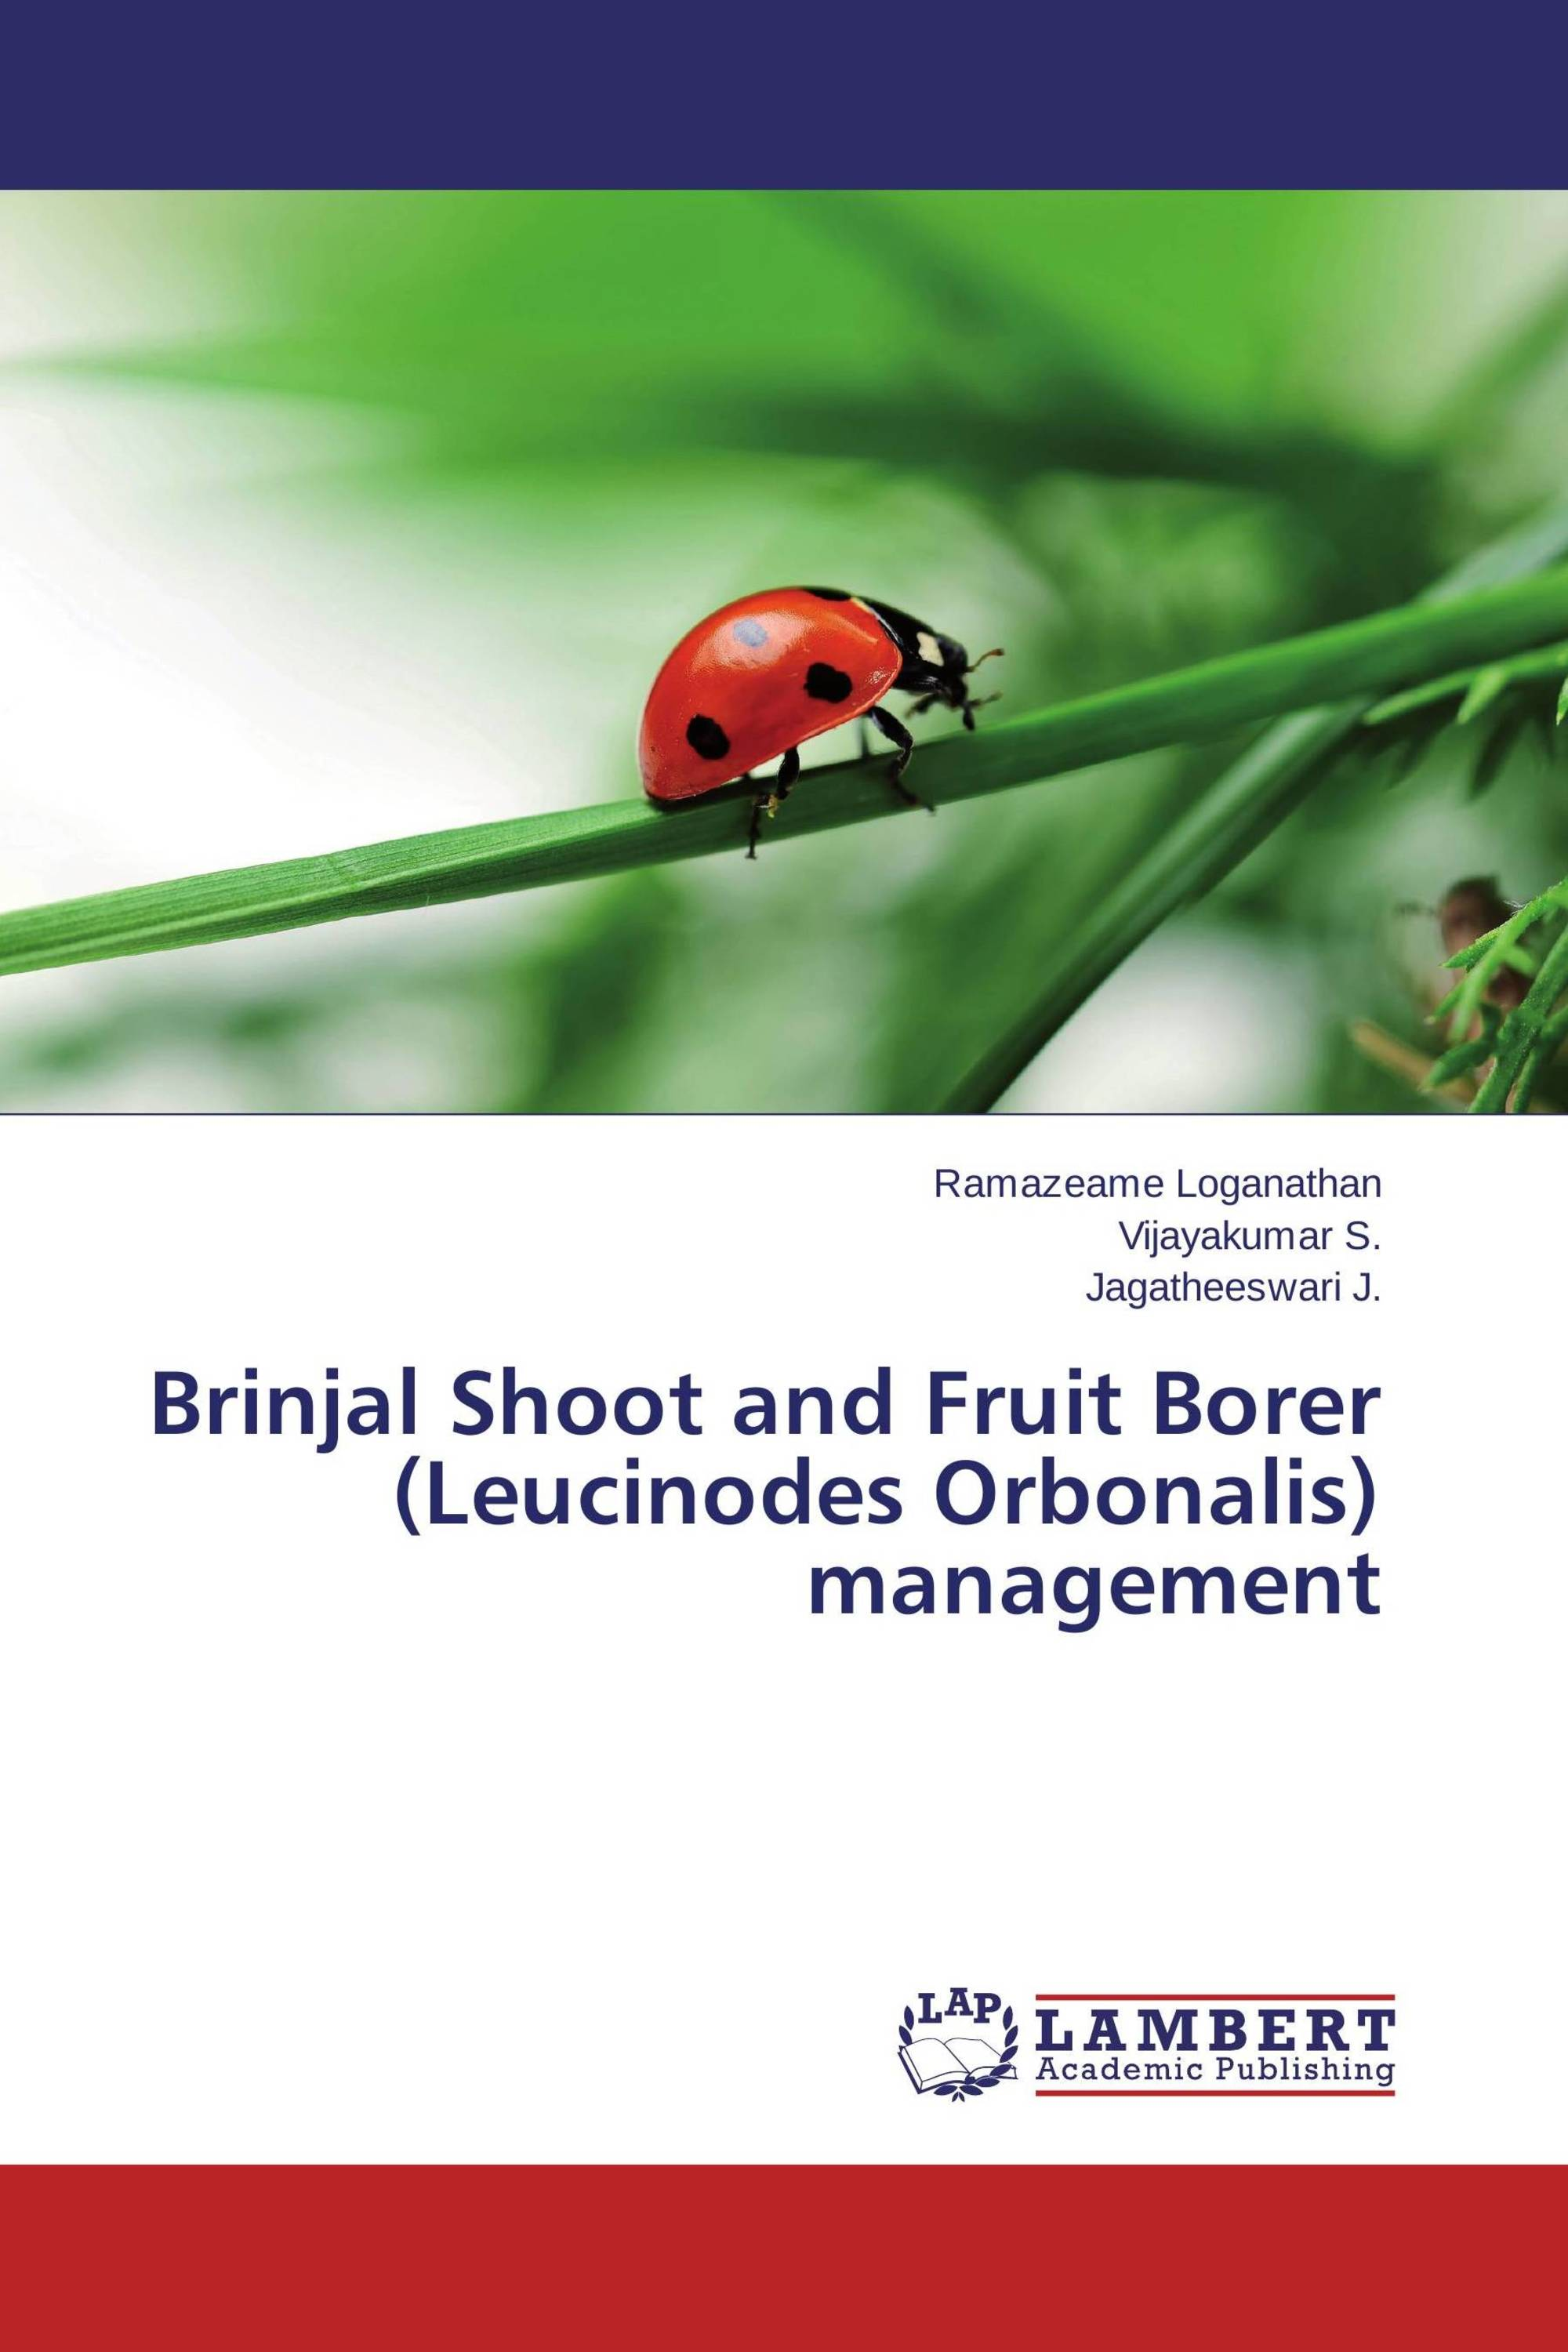 thesis on brinjal fruit and shoot borer Integrated nutrient management (inm) approach for brinjal  and other solanaceous vegetables -a review  incidence of brinjal shoot and fruit borer.